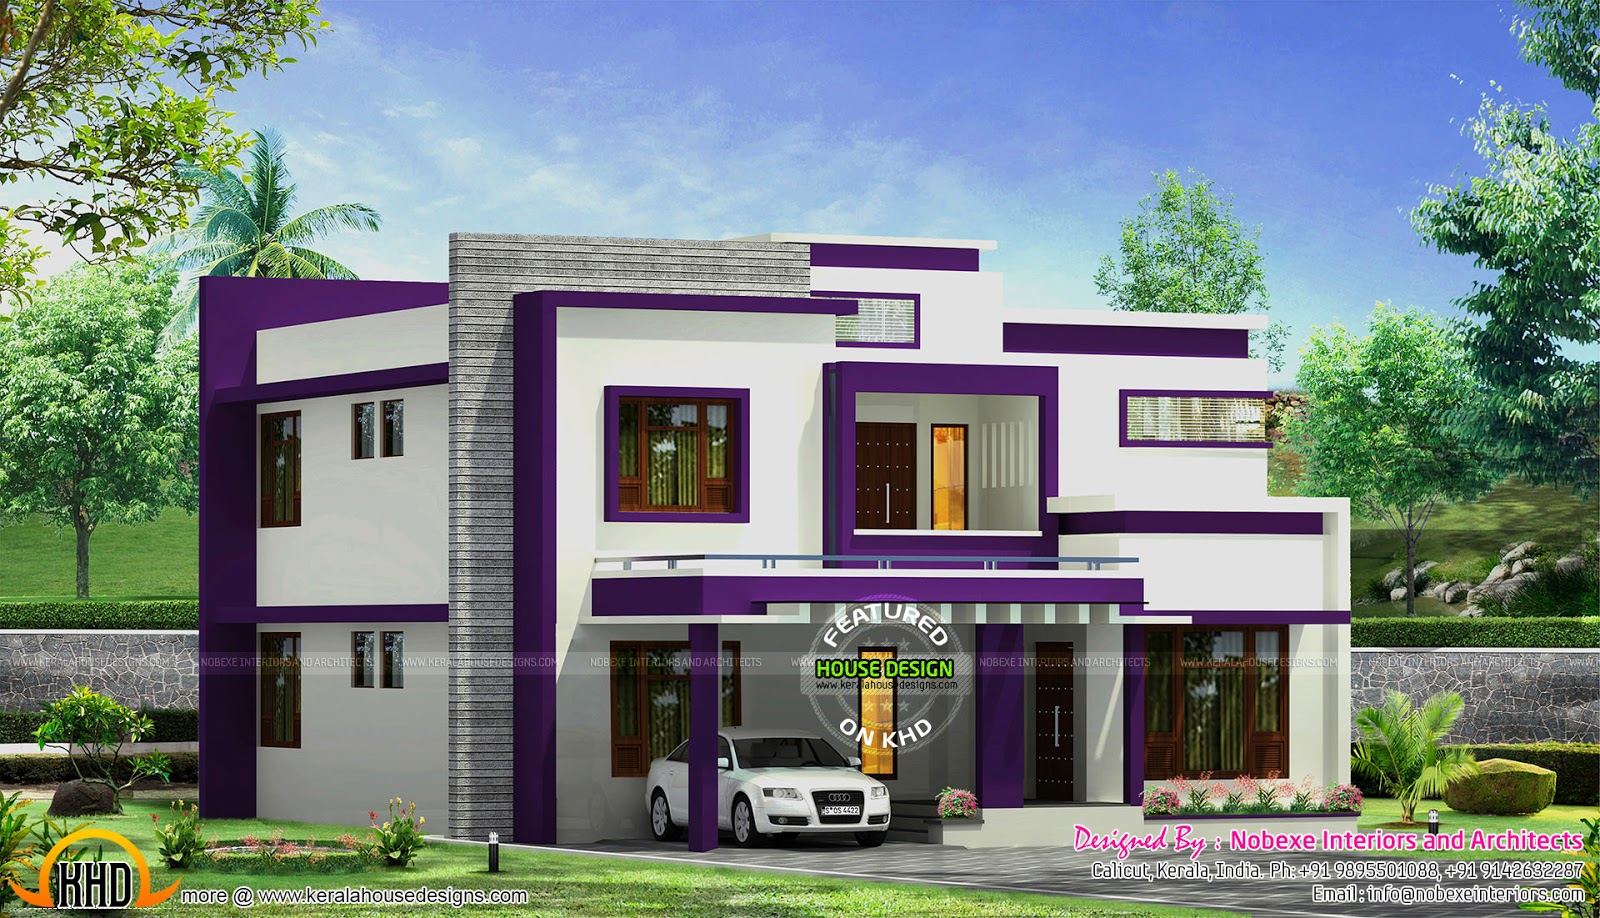 Contemporary home design by nobexe interiors kerala home for Best contemporary house design